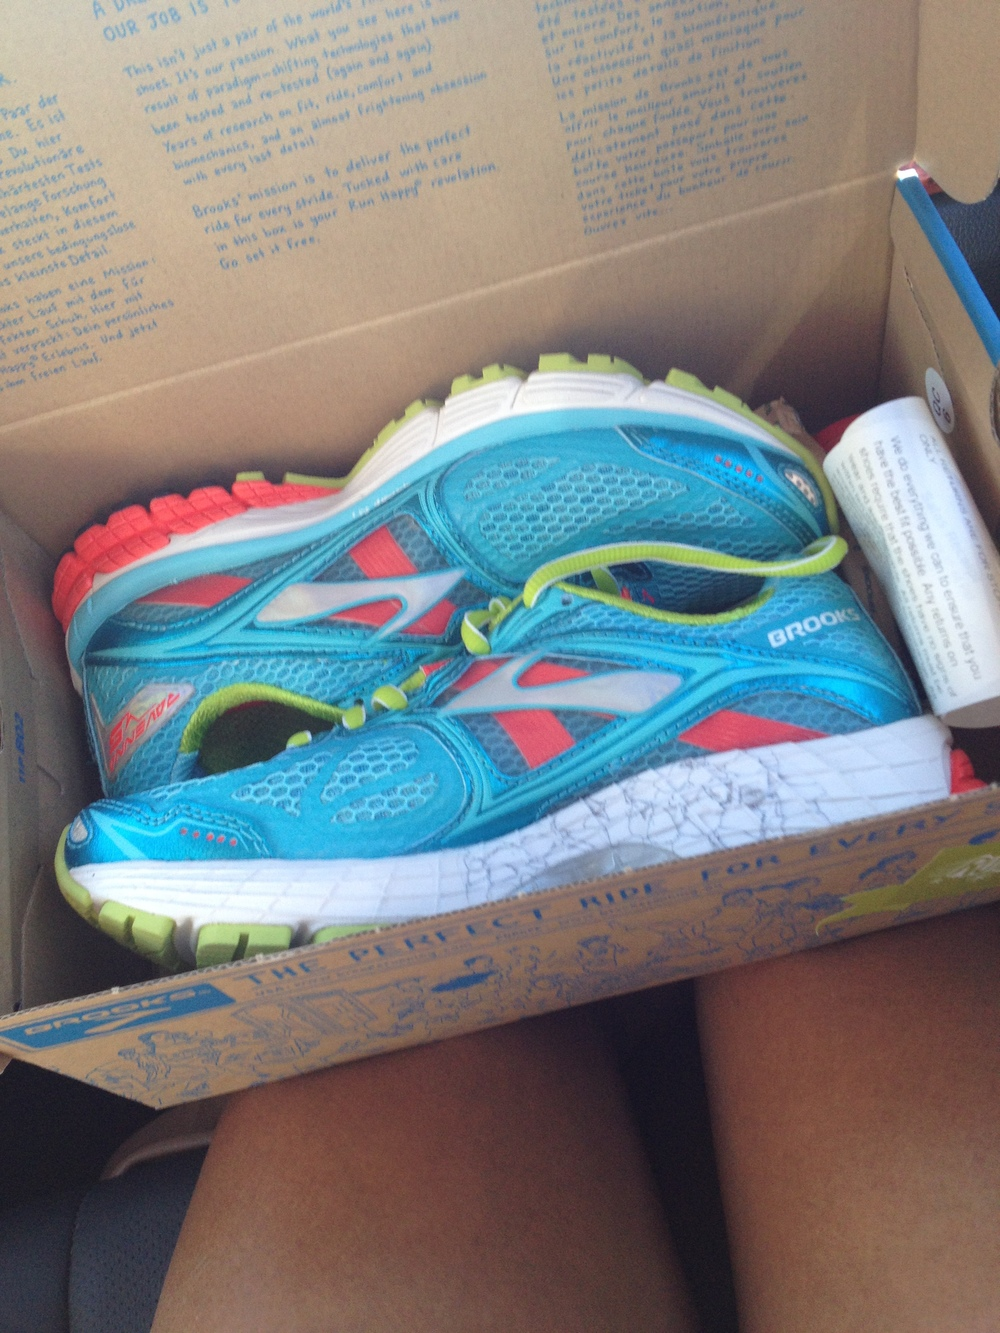 Aren't they pretty?!? What's your favorite running shoe?